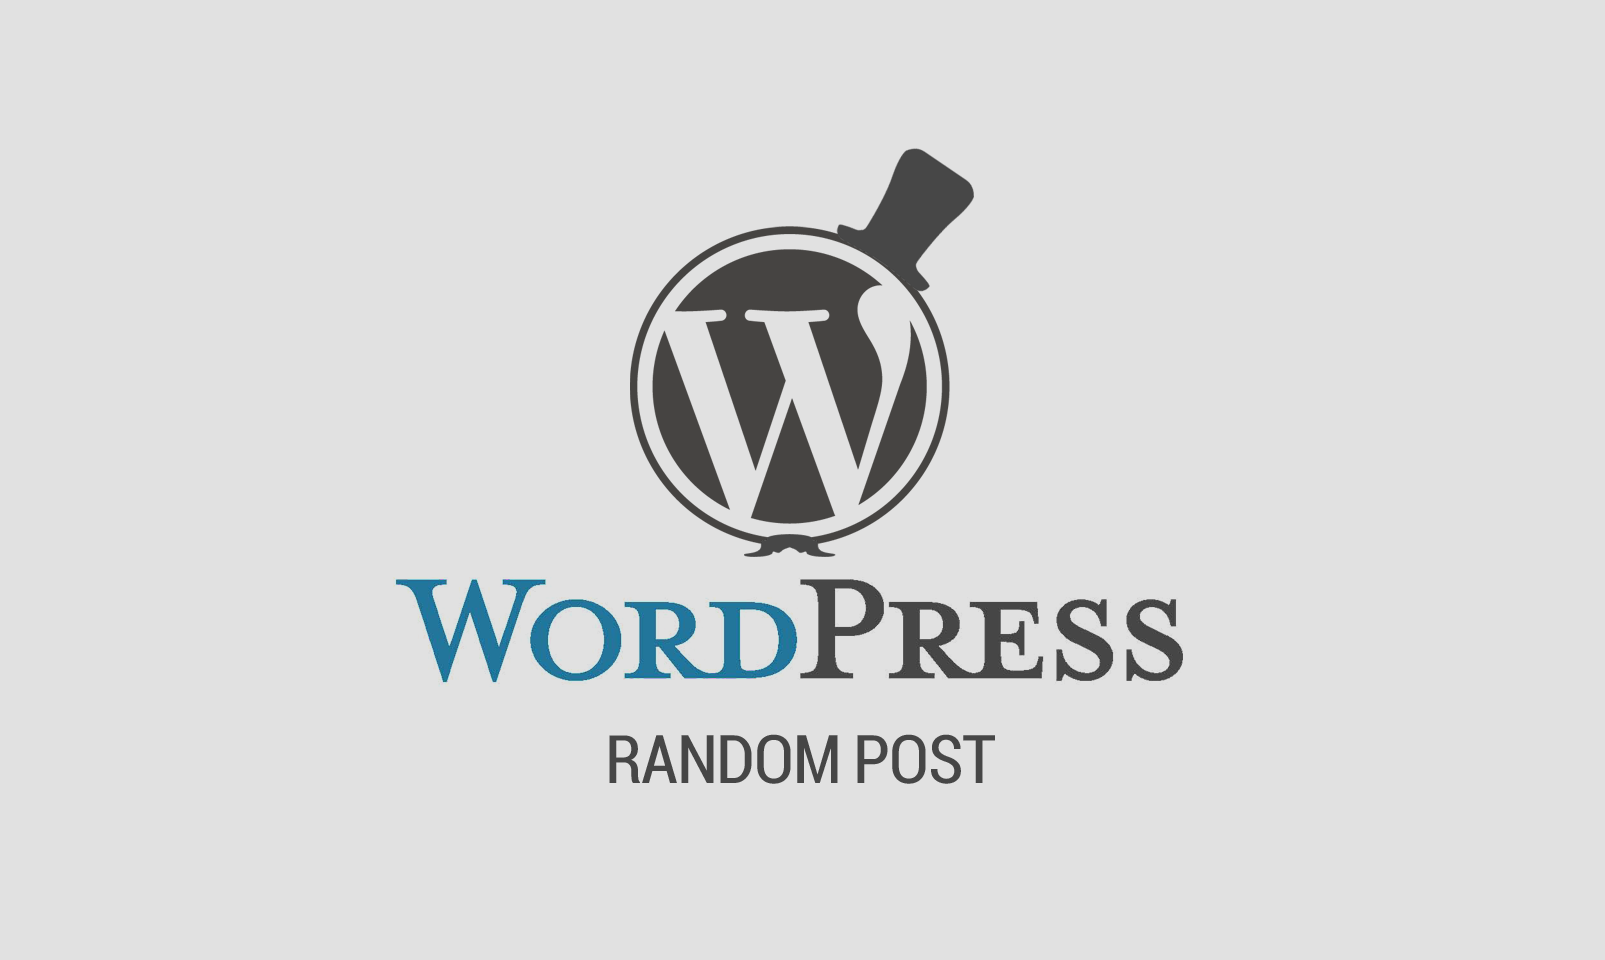 wordpress random post How to Display Wordpress Random Post in your Theme